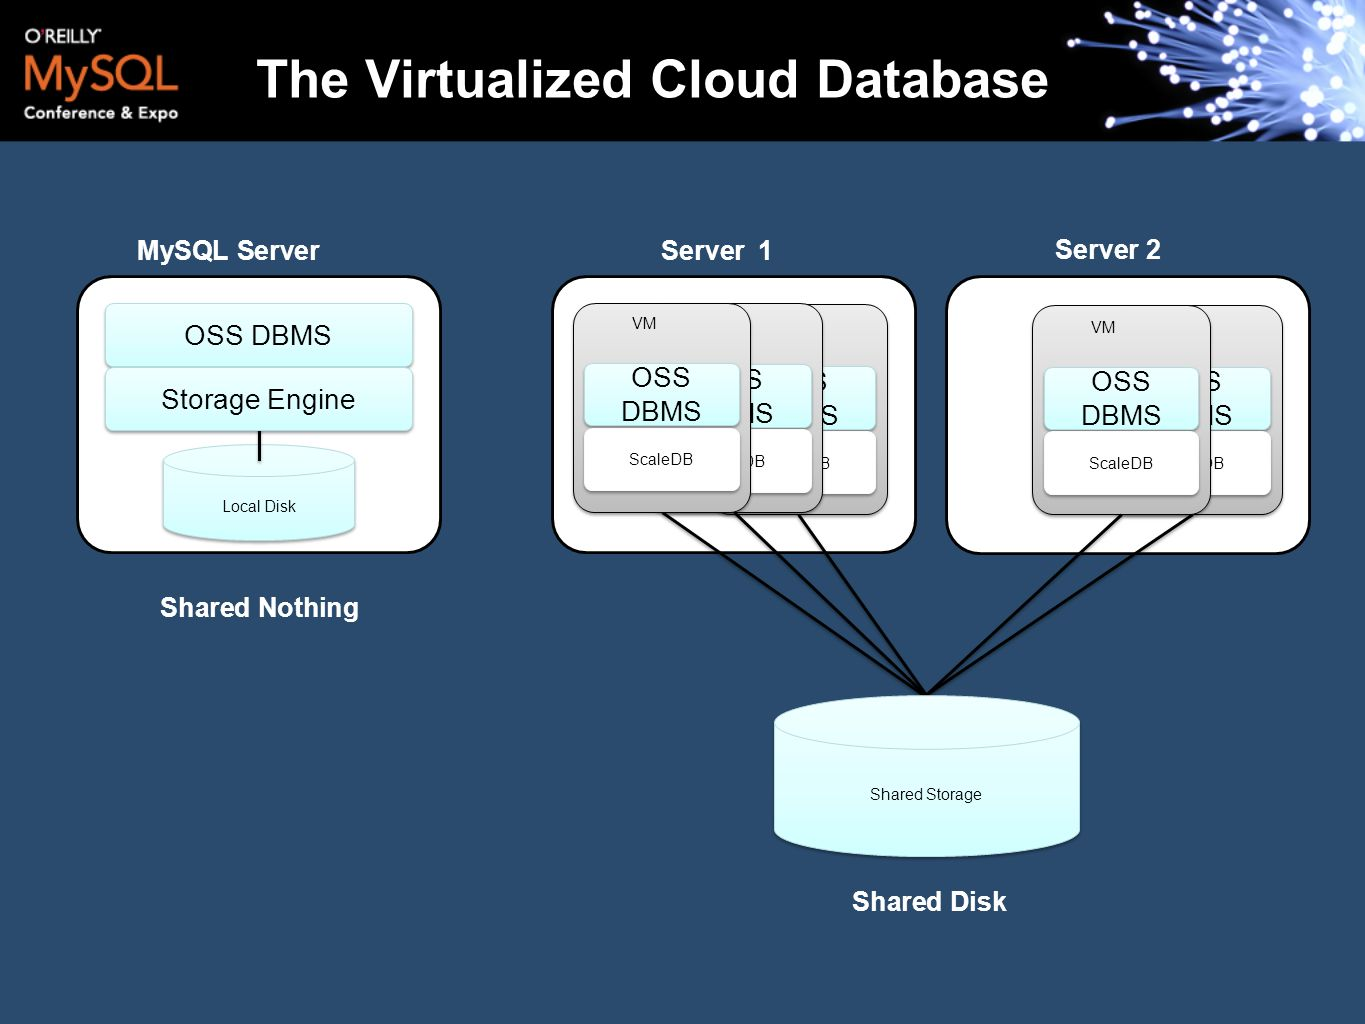 Server 1 OSS DBMS ScaleDB VM The Virtualized Cloud Database Local Disk OSS DBMS Storage Engine MySQL Server Server 2 OSS DBMS ScaleDB VM OSS DBMS Scal